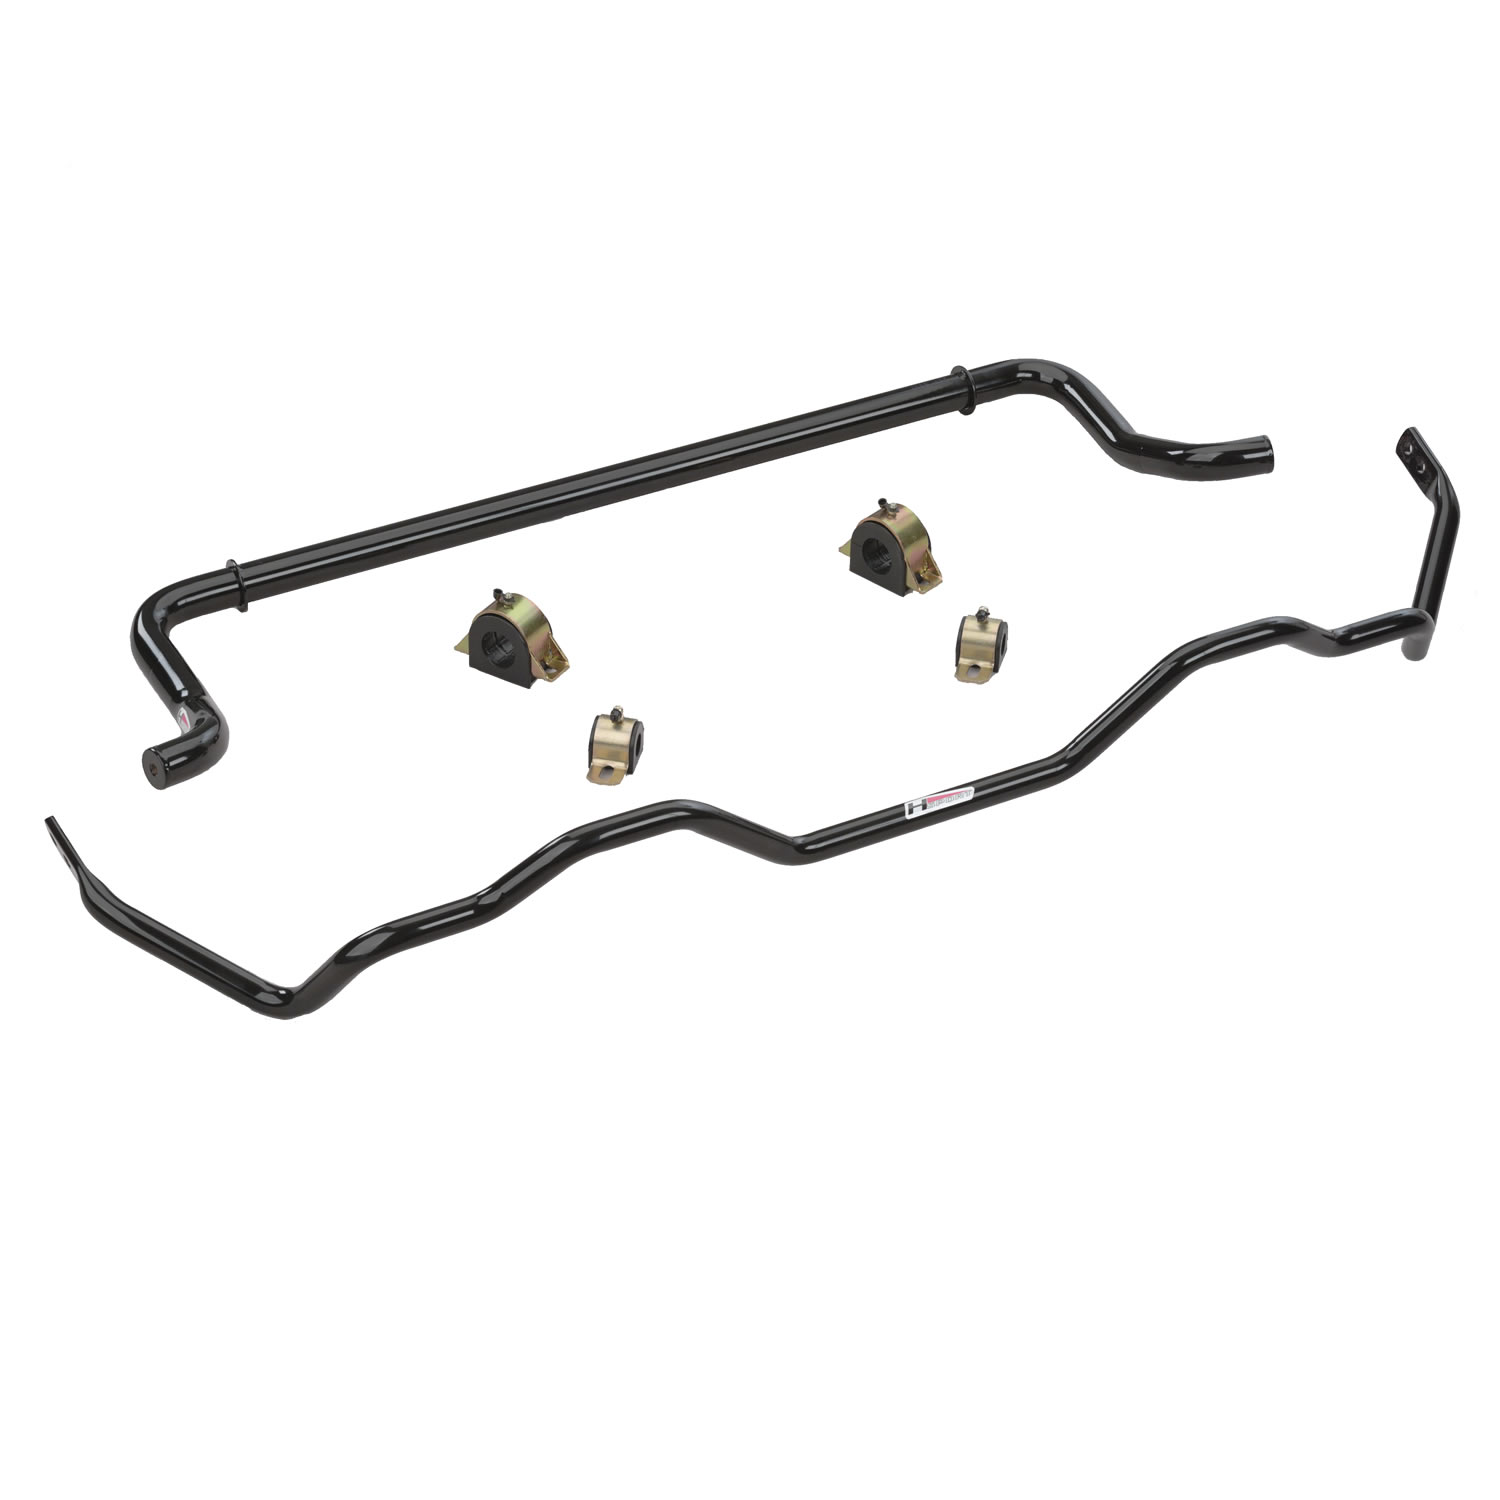 Hotchkis Sport Suspension Systems Parts And Complete Bolt In Packages Blog Archive Audi